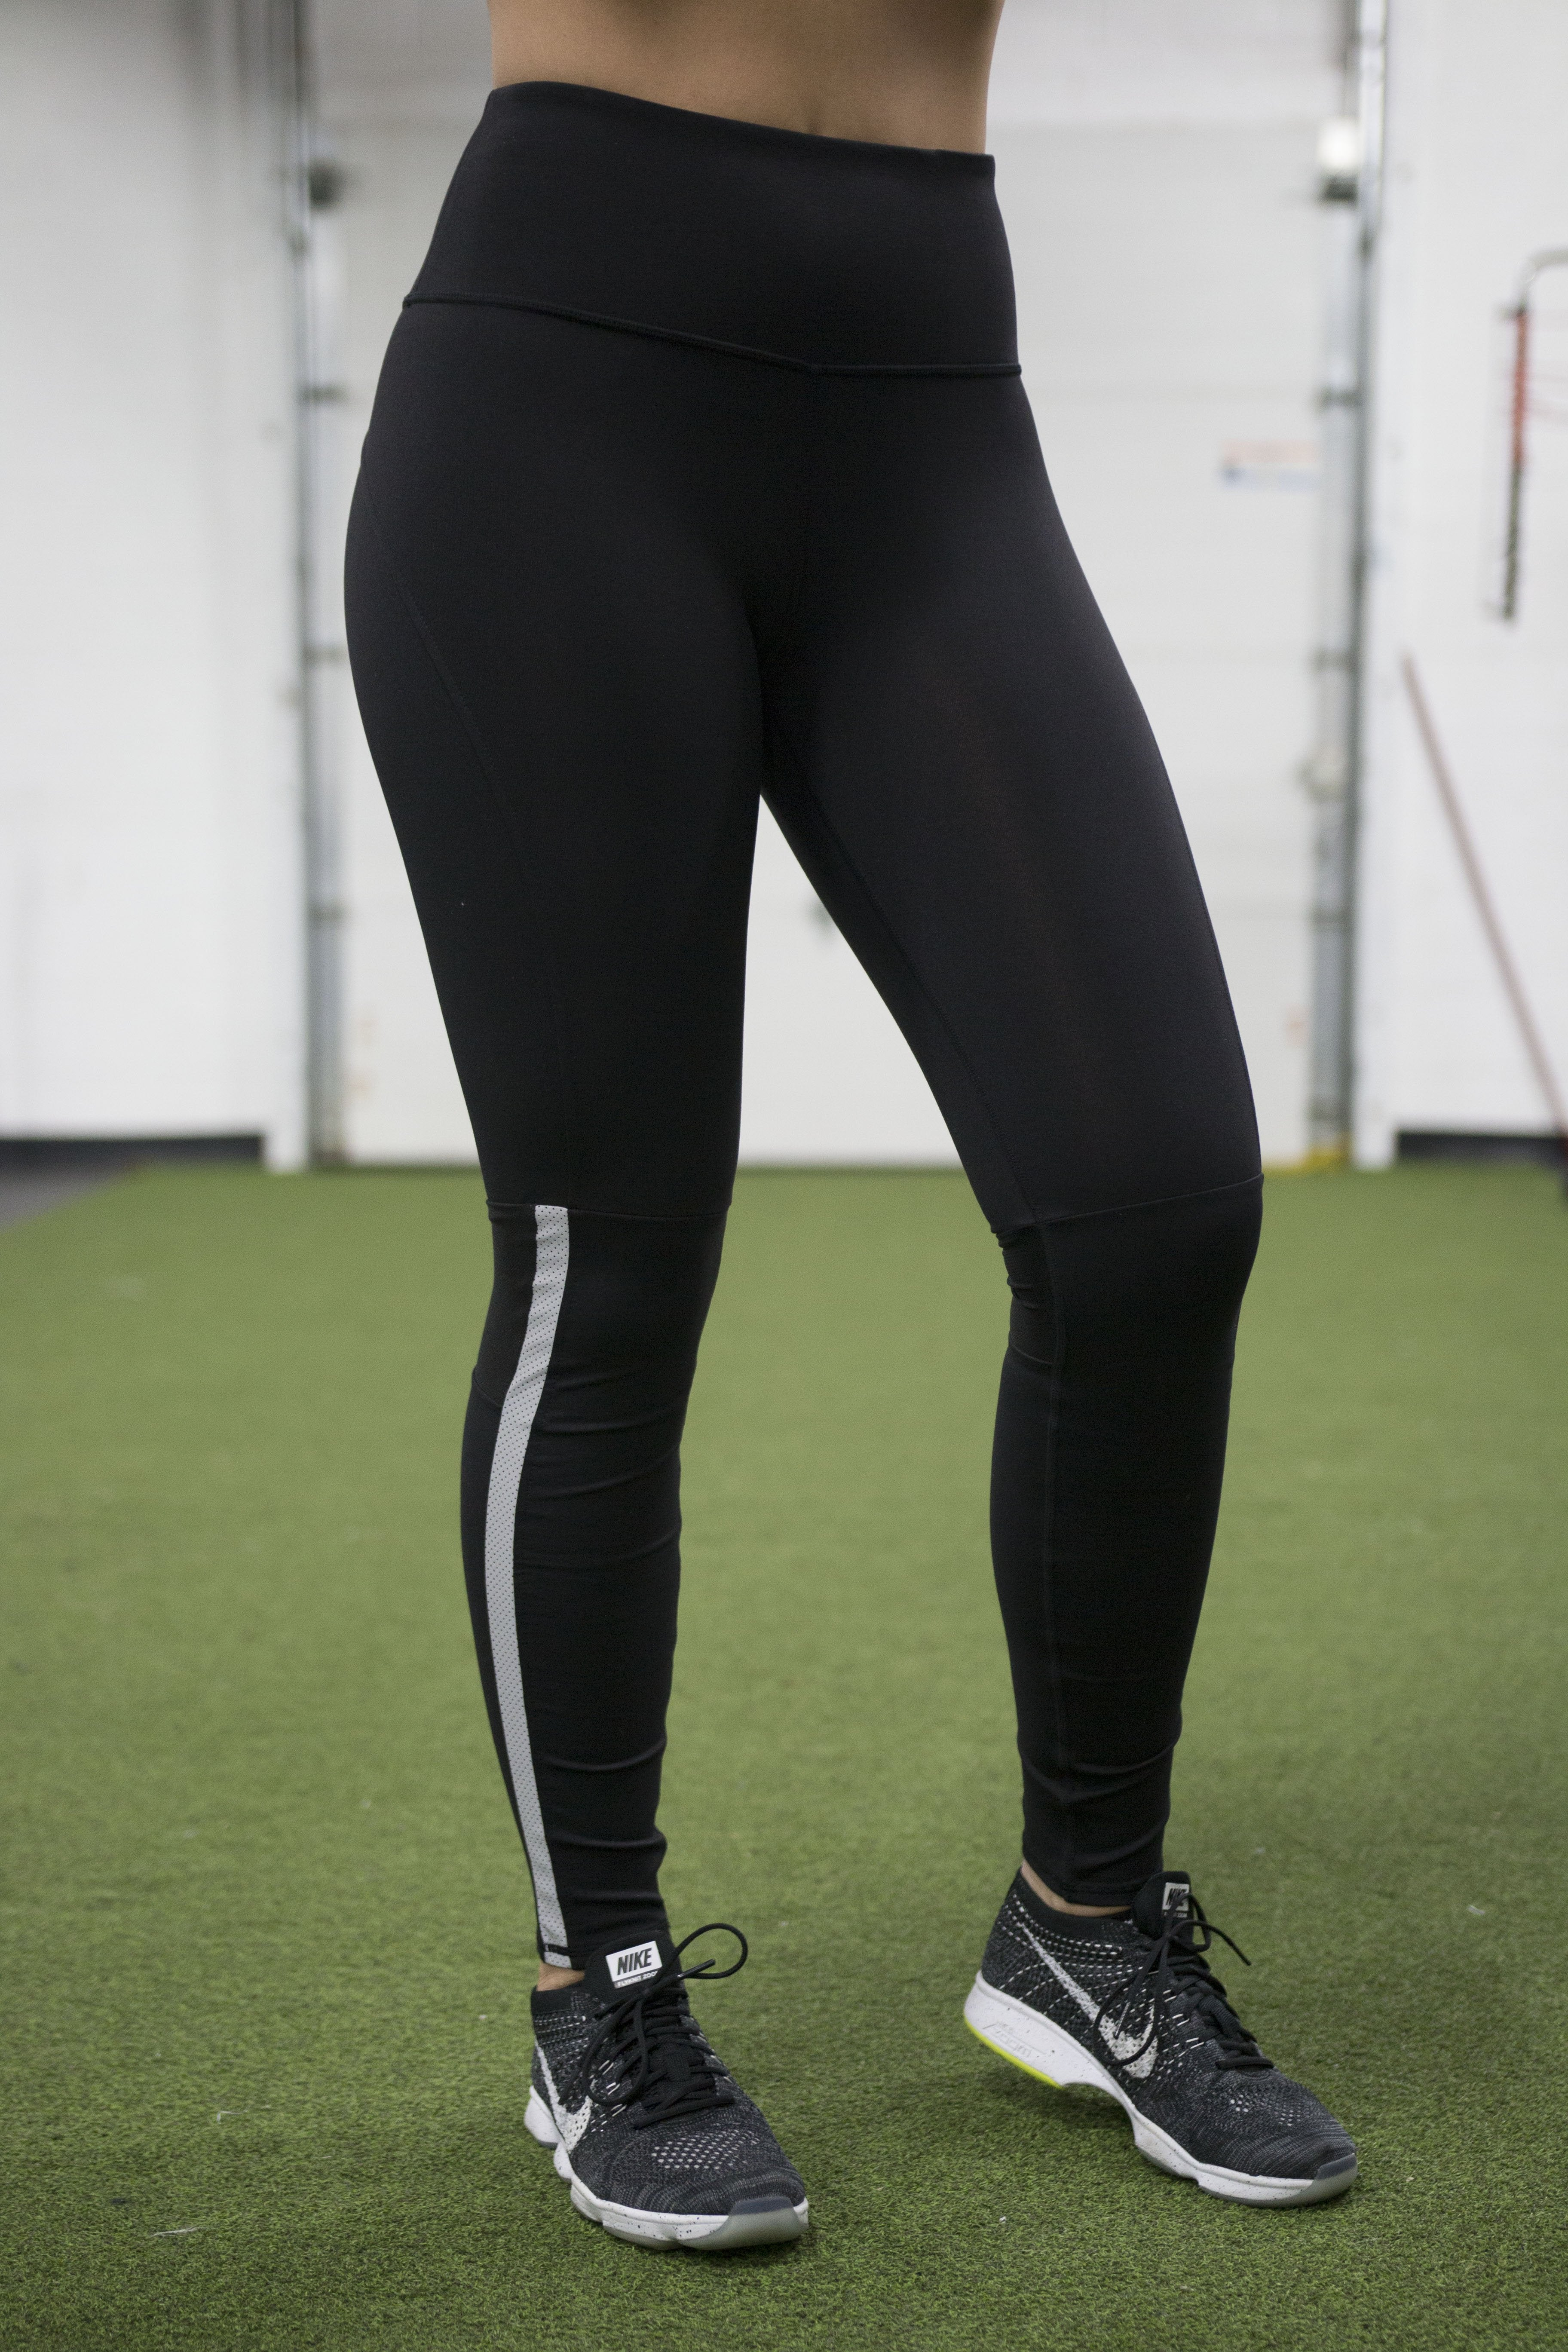 Women s Running Pants - The Lost Breed ... 6249378c88